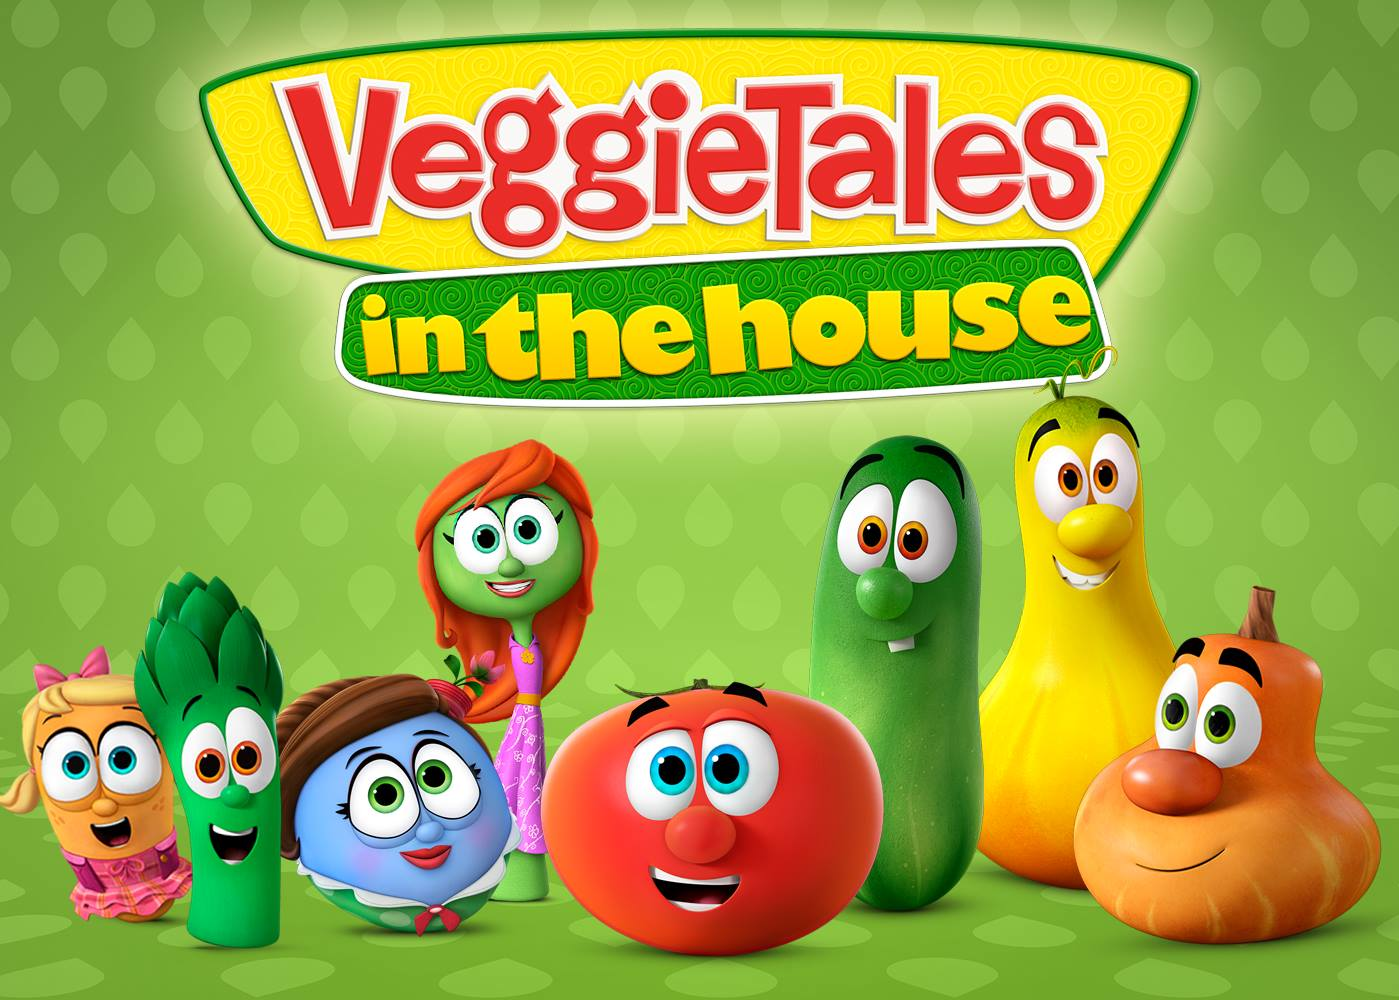 VeggieTales (Dreamworks) - Credits: Electric Guitar on many songs throughout series